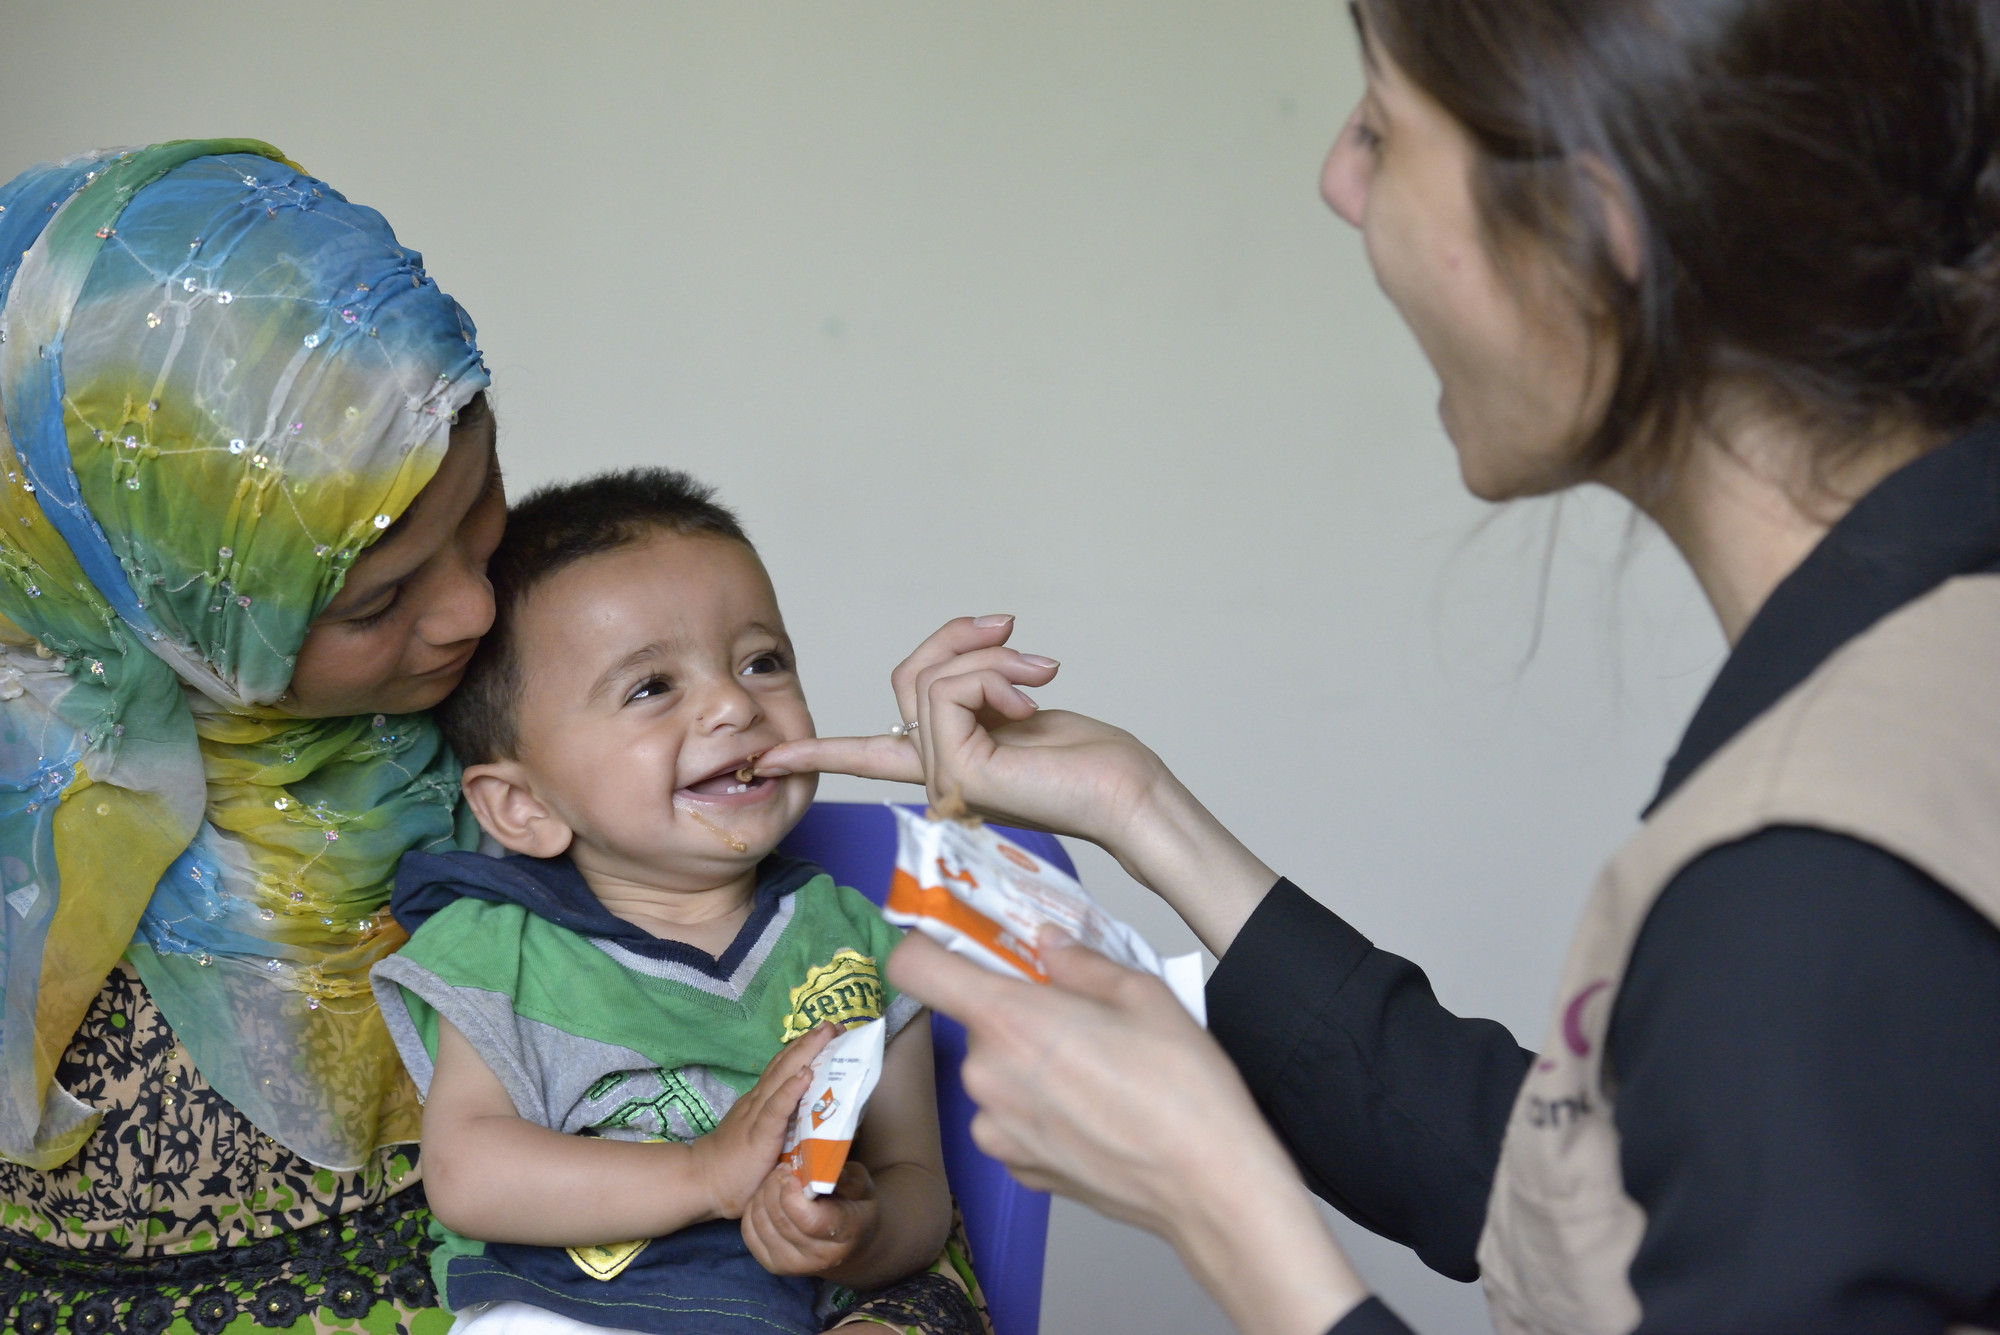 Maha Haidar, a health and nutrition specialist with International Orthodox Christian Charities, a member of the ACT Alliance, feeds 11-month old Abdul as his mother, Rokaya Al Ali, holds him in the community health center in Kab Elias, a town in Lebanon's Bekaa Valley which has filled with Syrian refugees. Photo: Paul Jeffrey/ACT